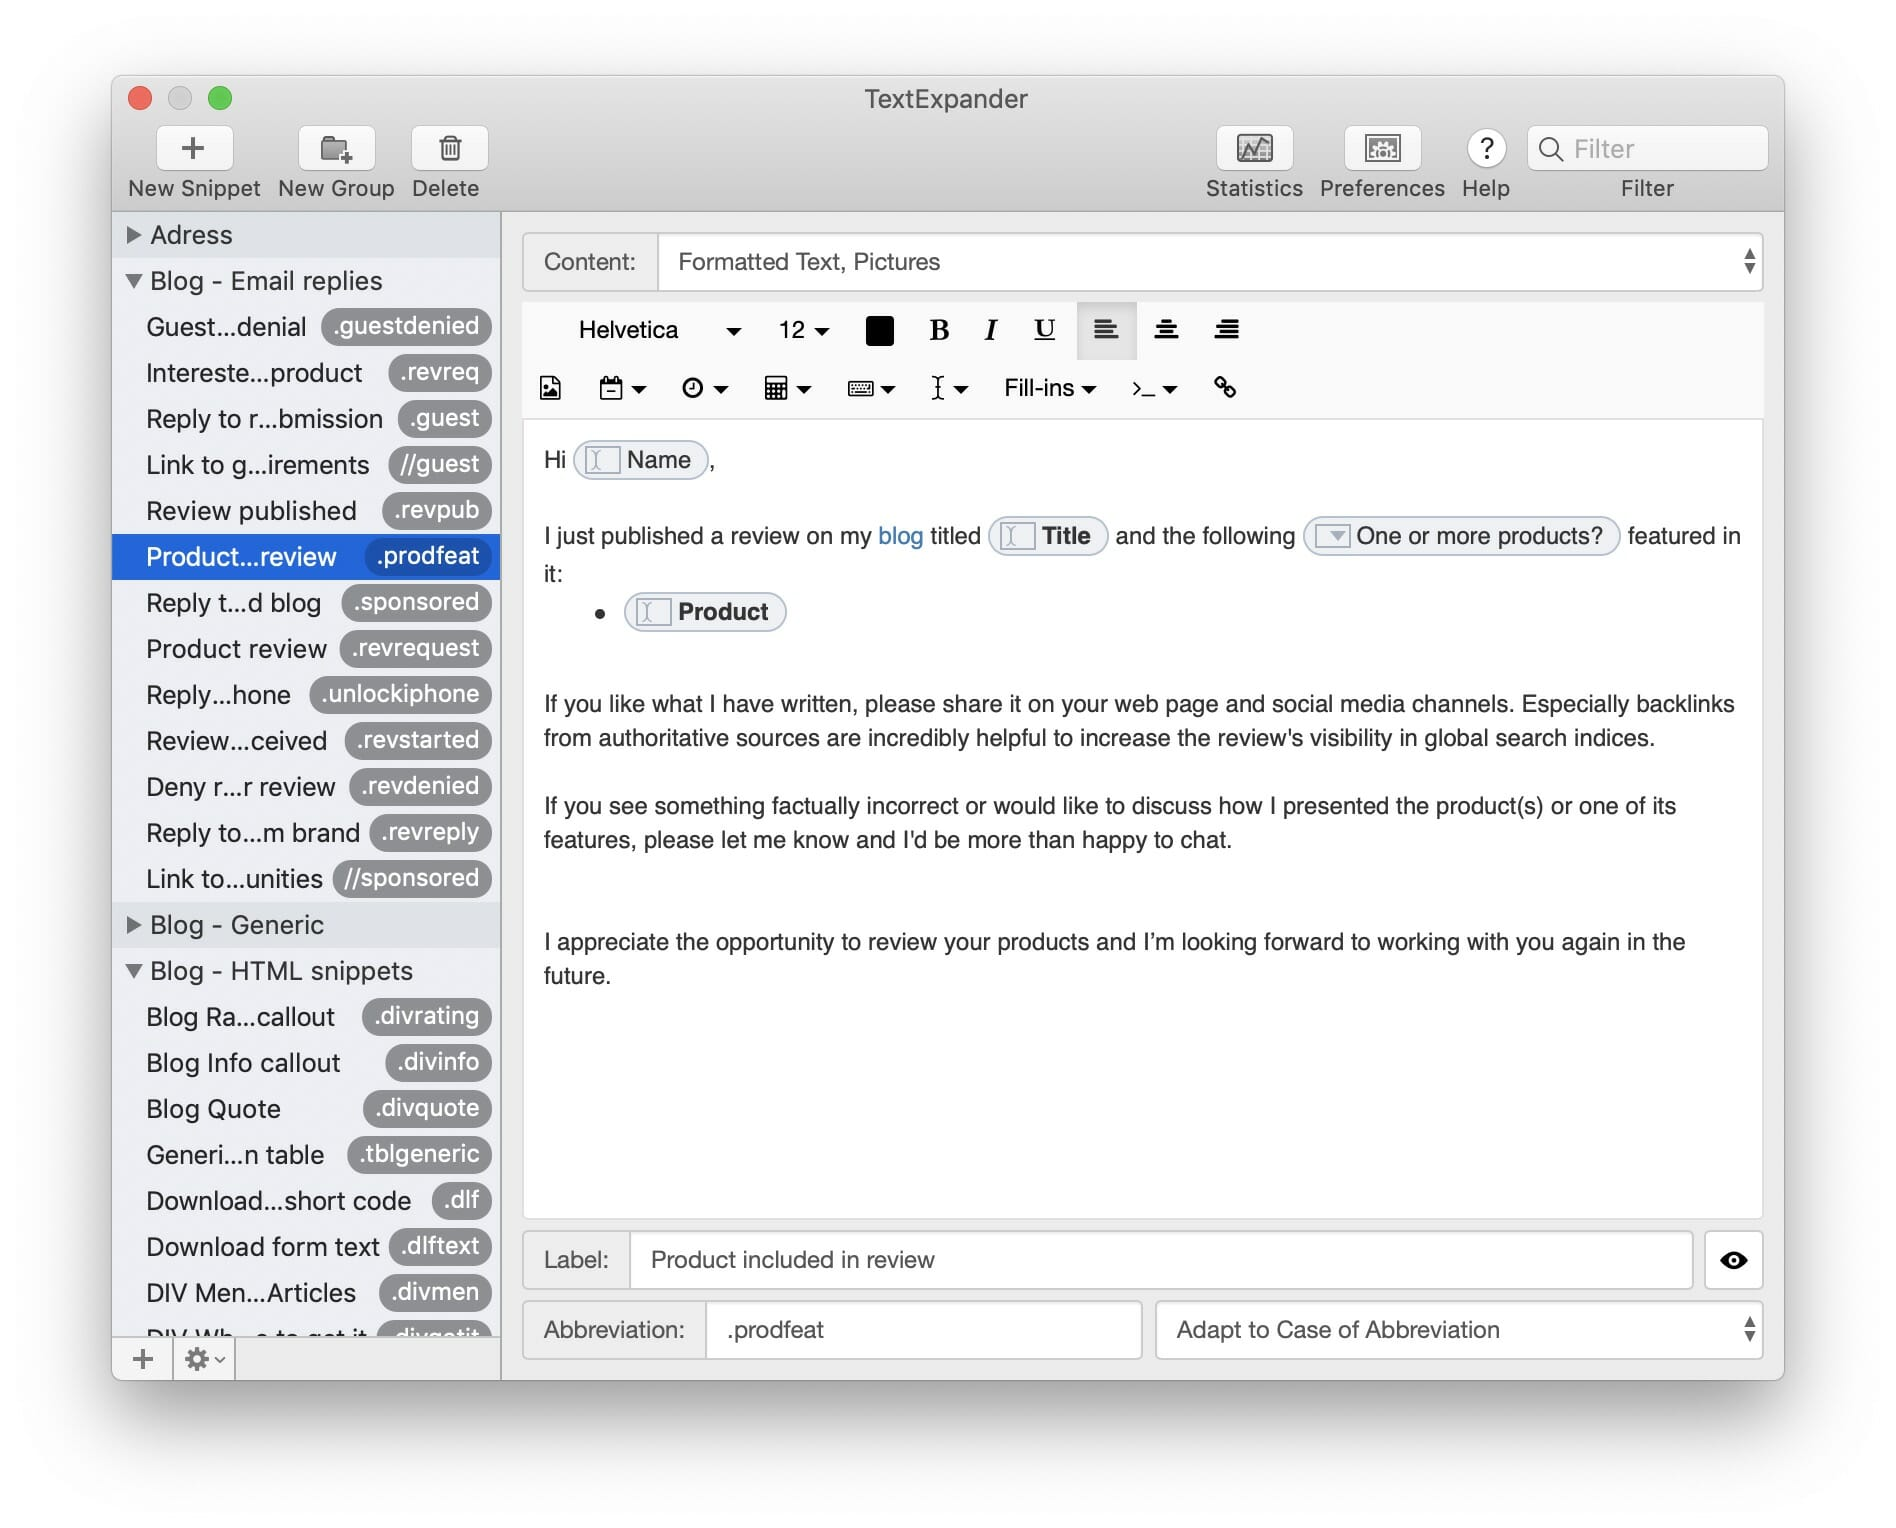 TextExpander - Makes you type less